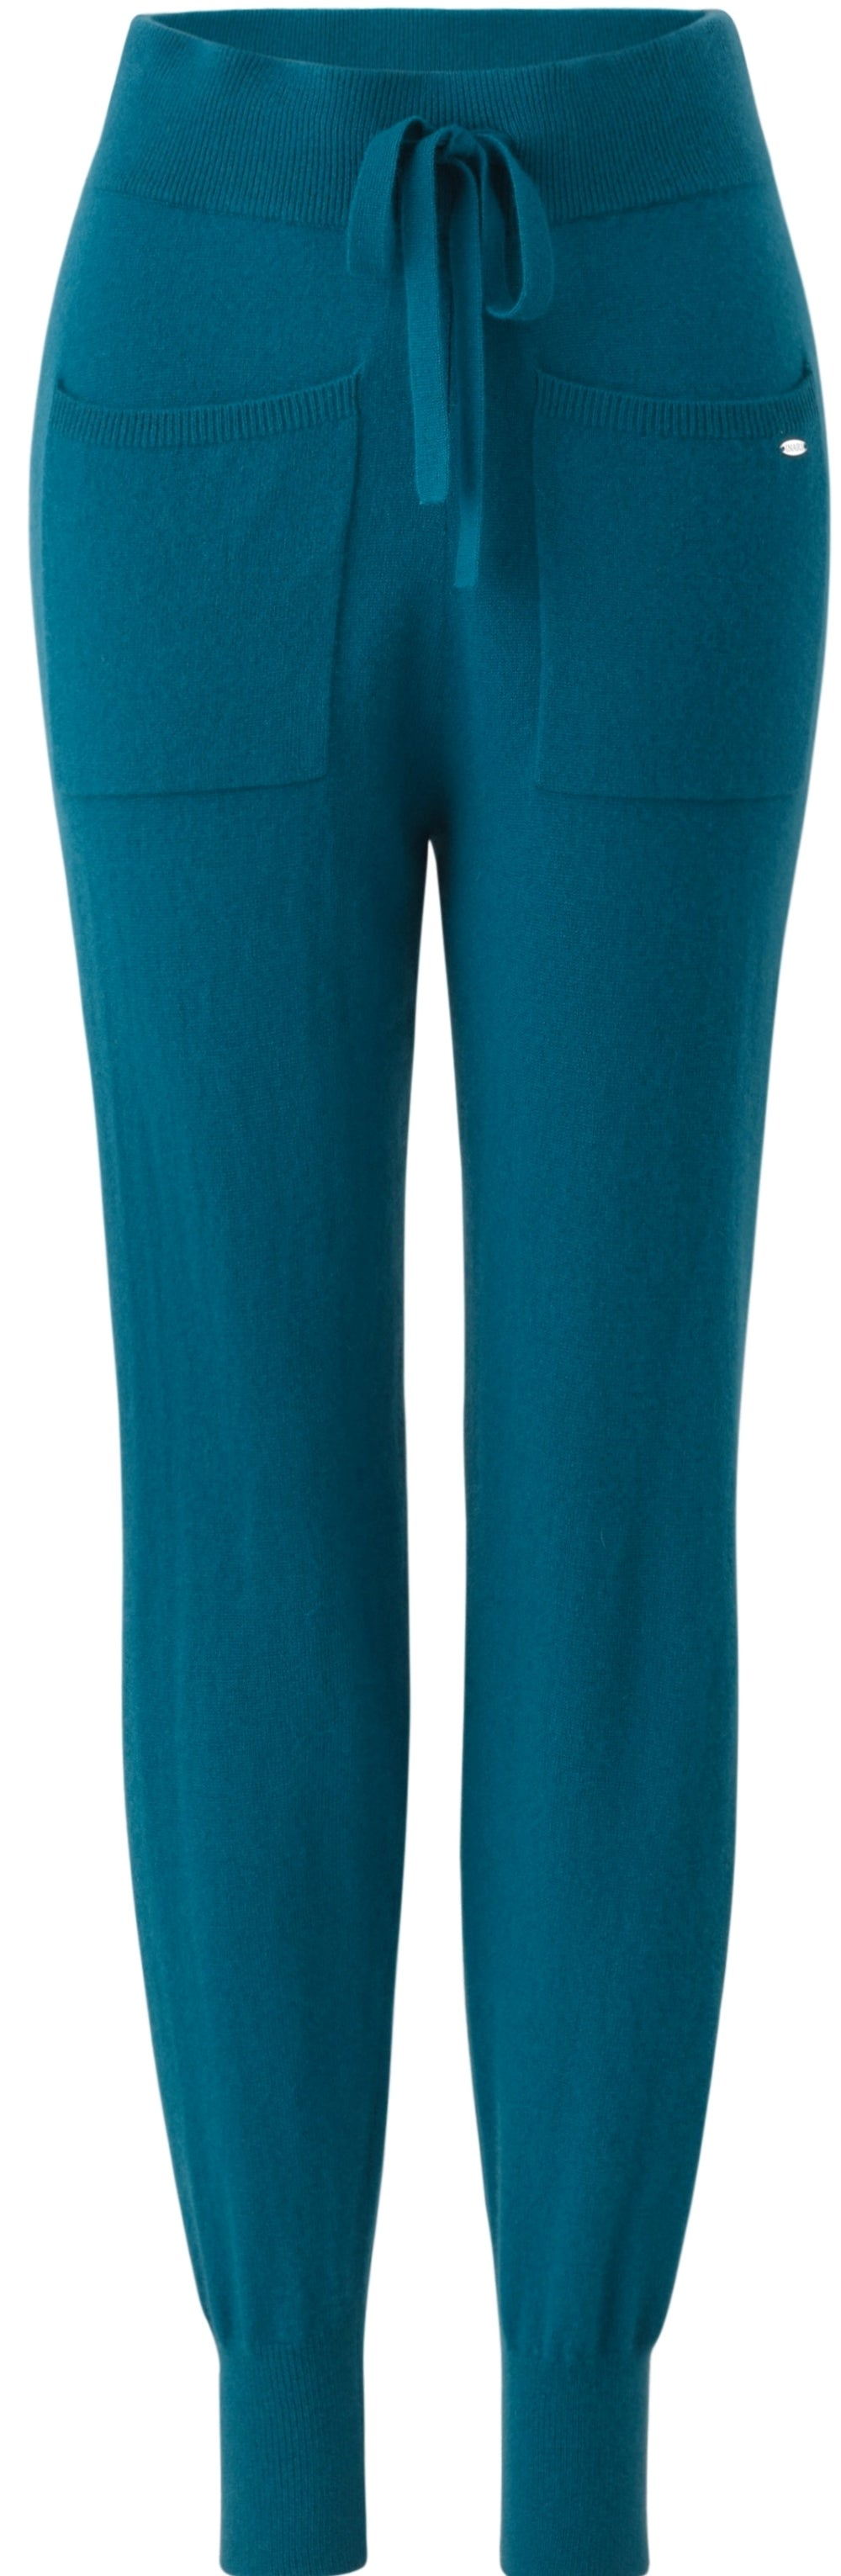 Inari Women's petrol cashmere pants - front side - 100% high-quality cashmere - Inari-clothing.fi